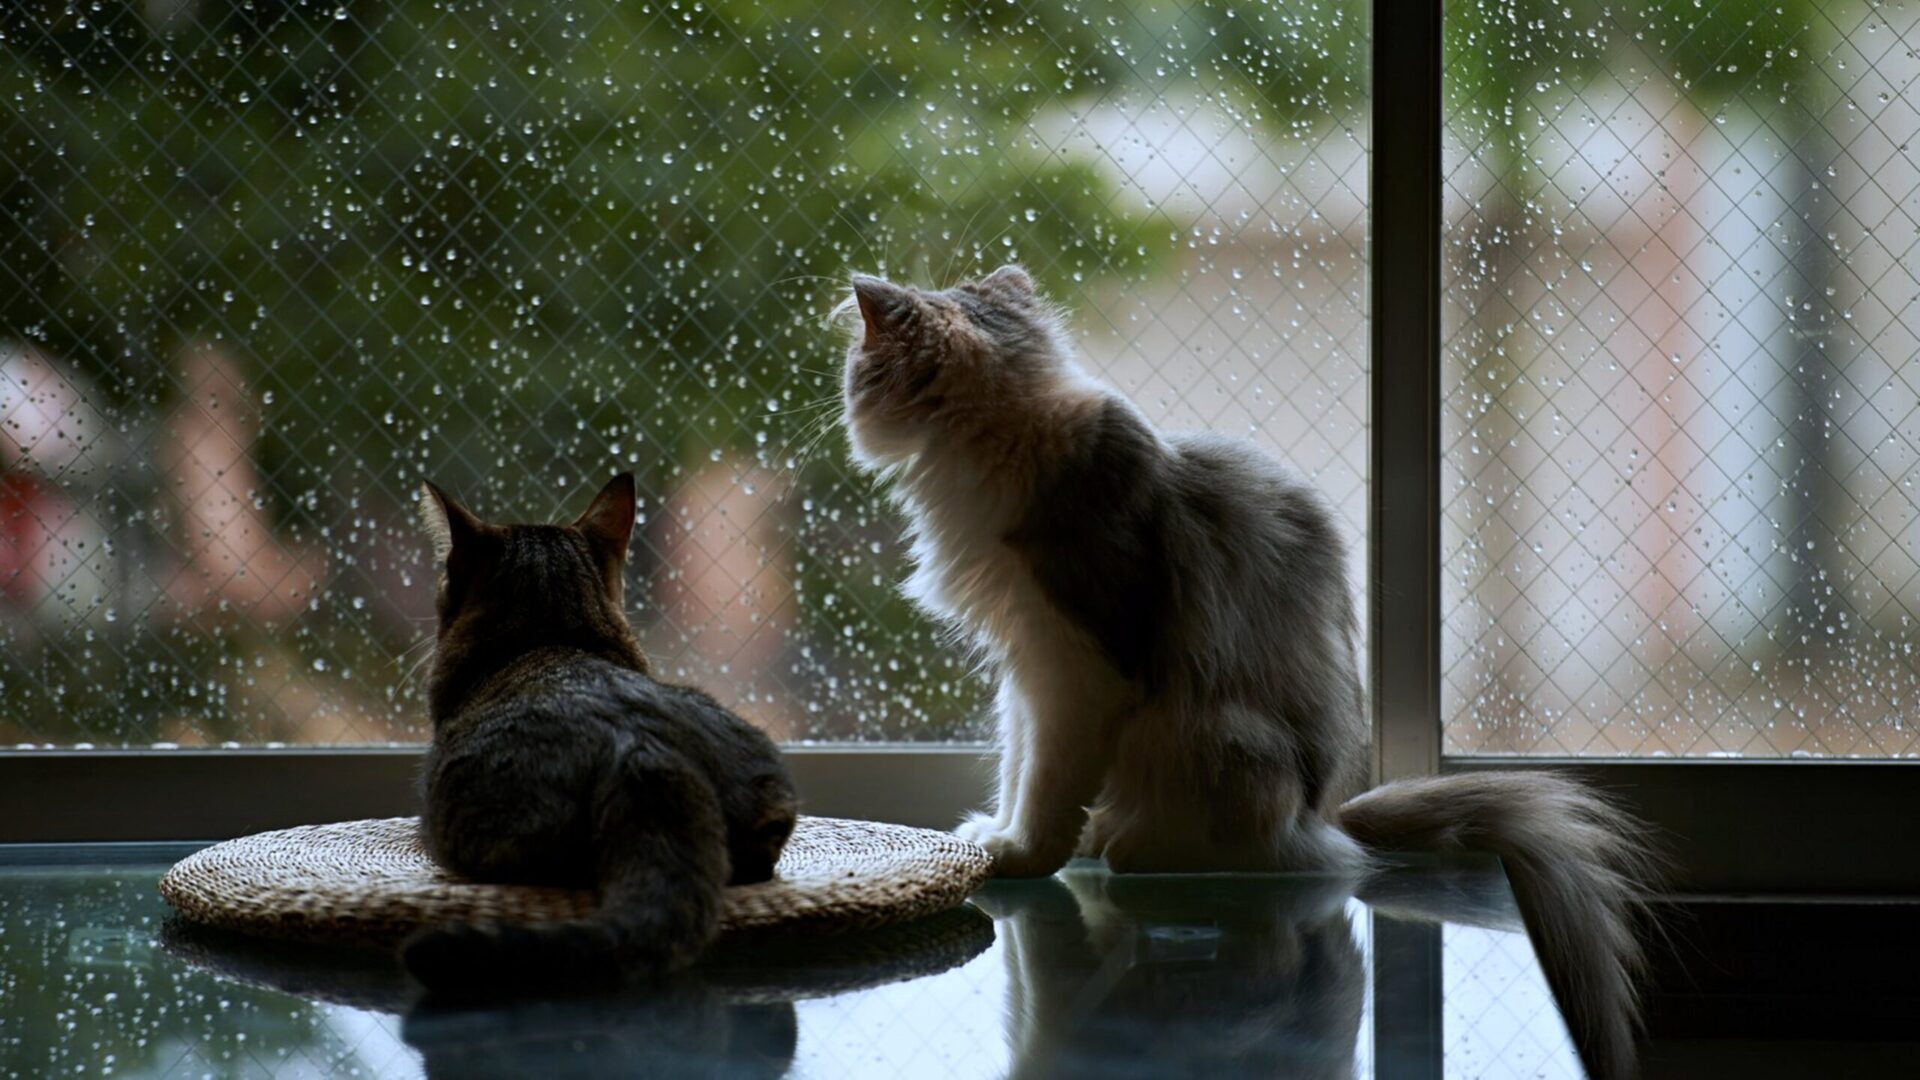 This is a photo of 2 cats sitting on a table looking outside at the rain, sorry they can't go out. It is meant to illustrate the article about new tax rules which have a negative effect on the current housing market.